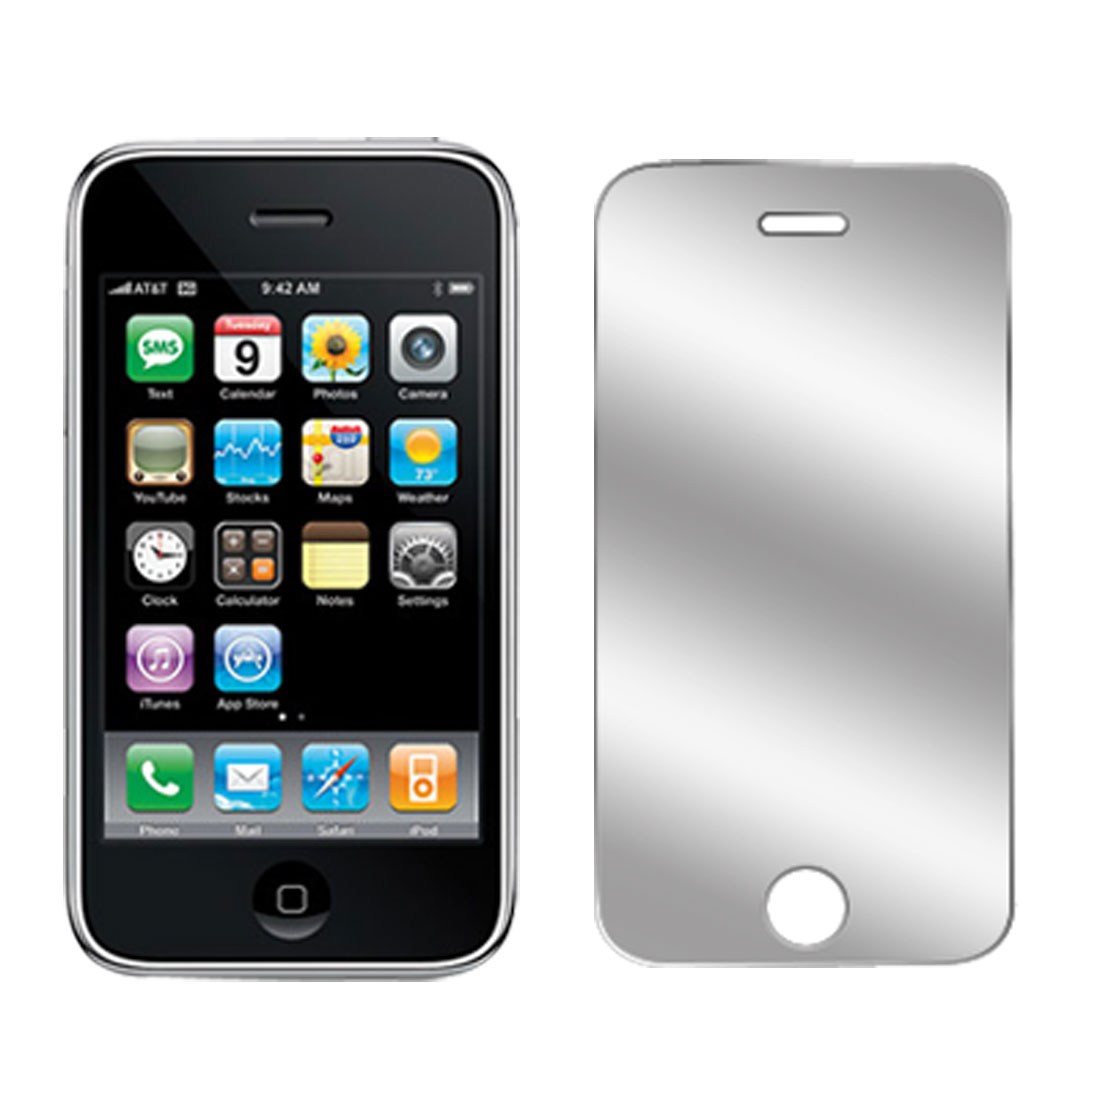 Mirror LCD Screen Guard Protector Film Shield for Apple iPhone 3G 2nd